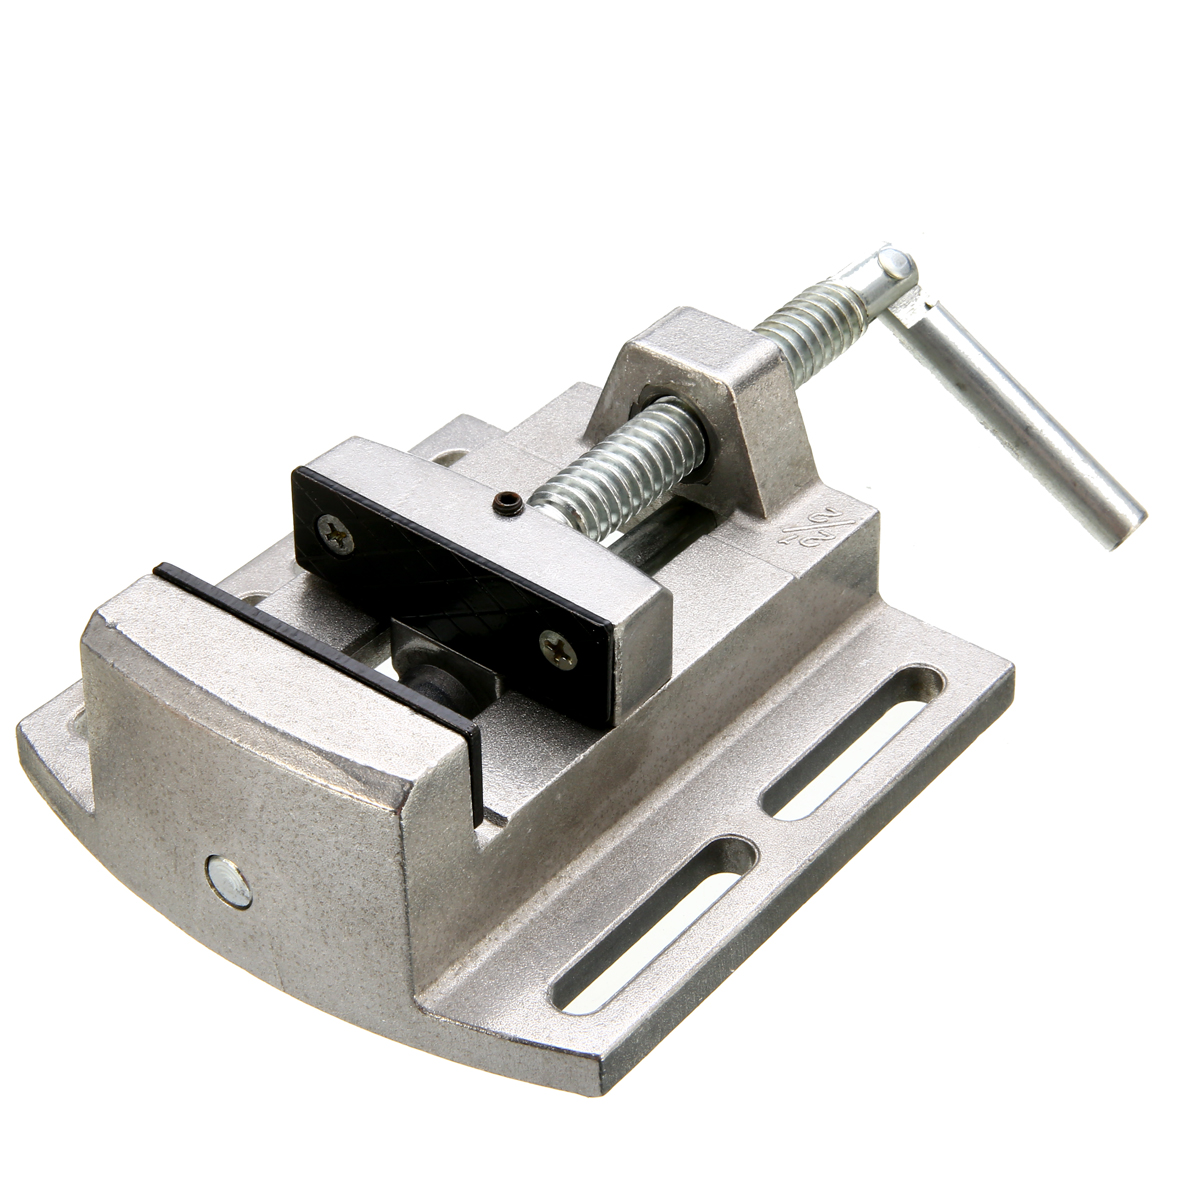 High Accuracy Bench Drill Vise Durable Grinding Drilling Pliers Aluminum Alloy Clamp Jaw Vice CNC Worktable Milling Machine Tool